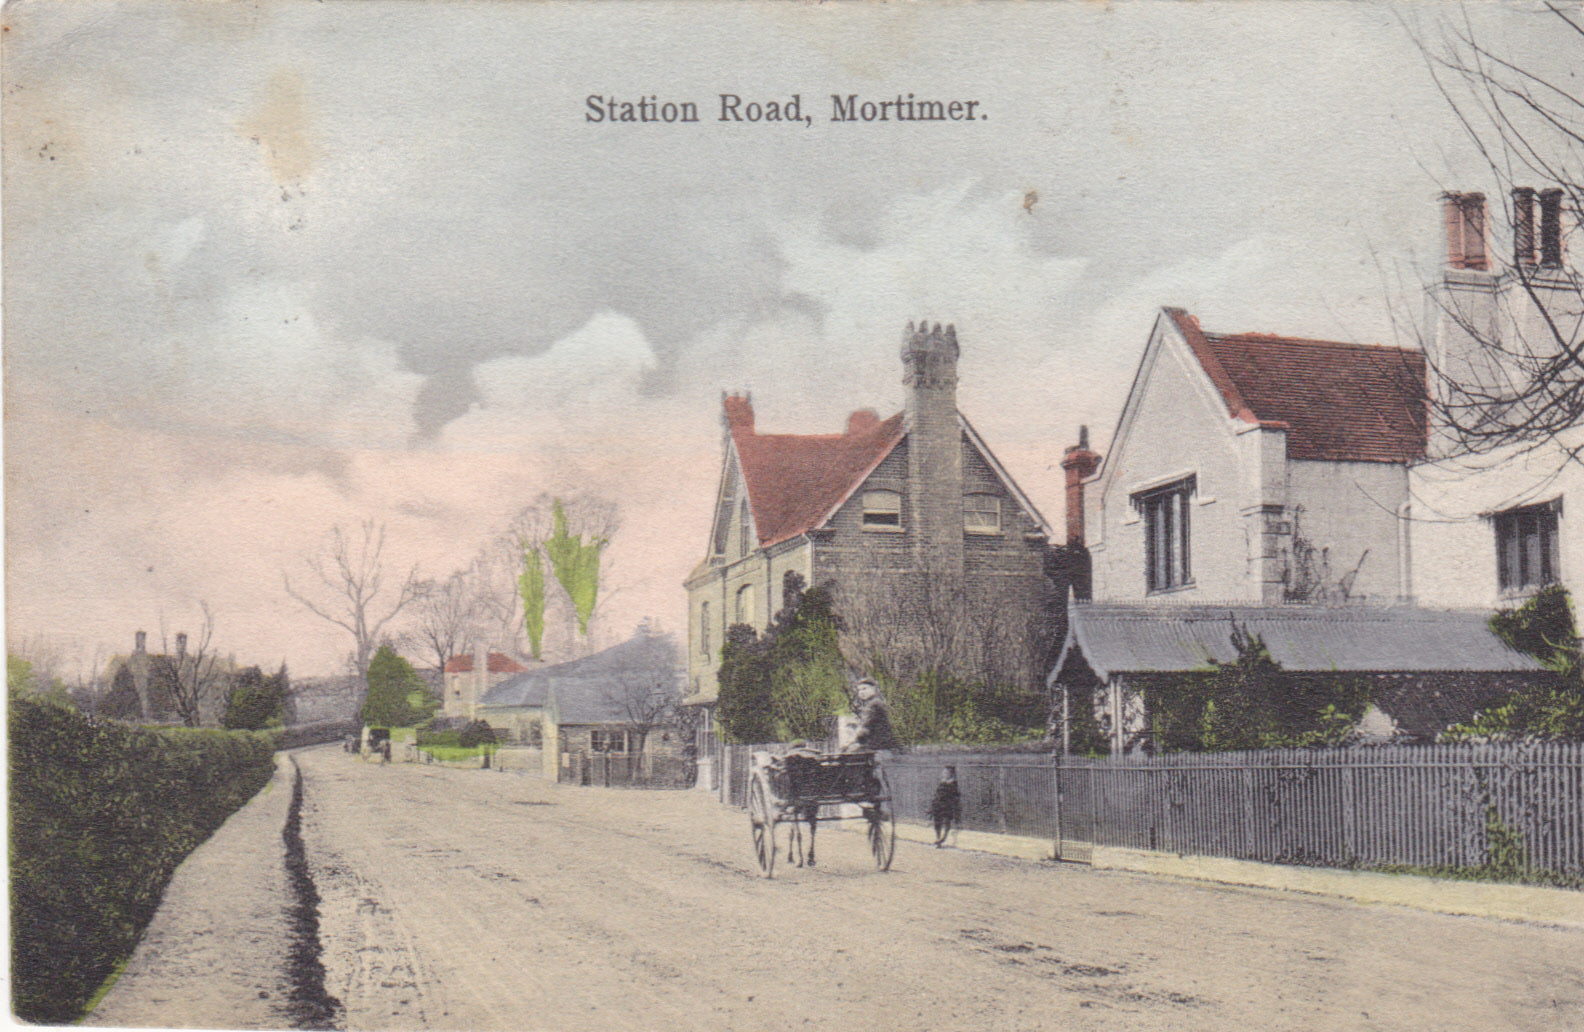 Station Road, Mortimer, Berkshire